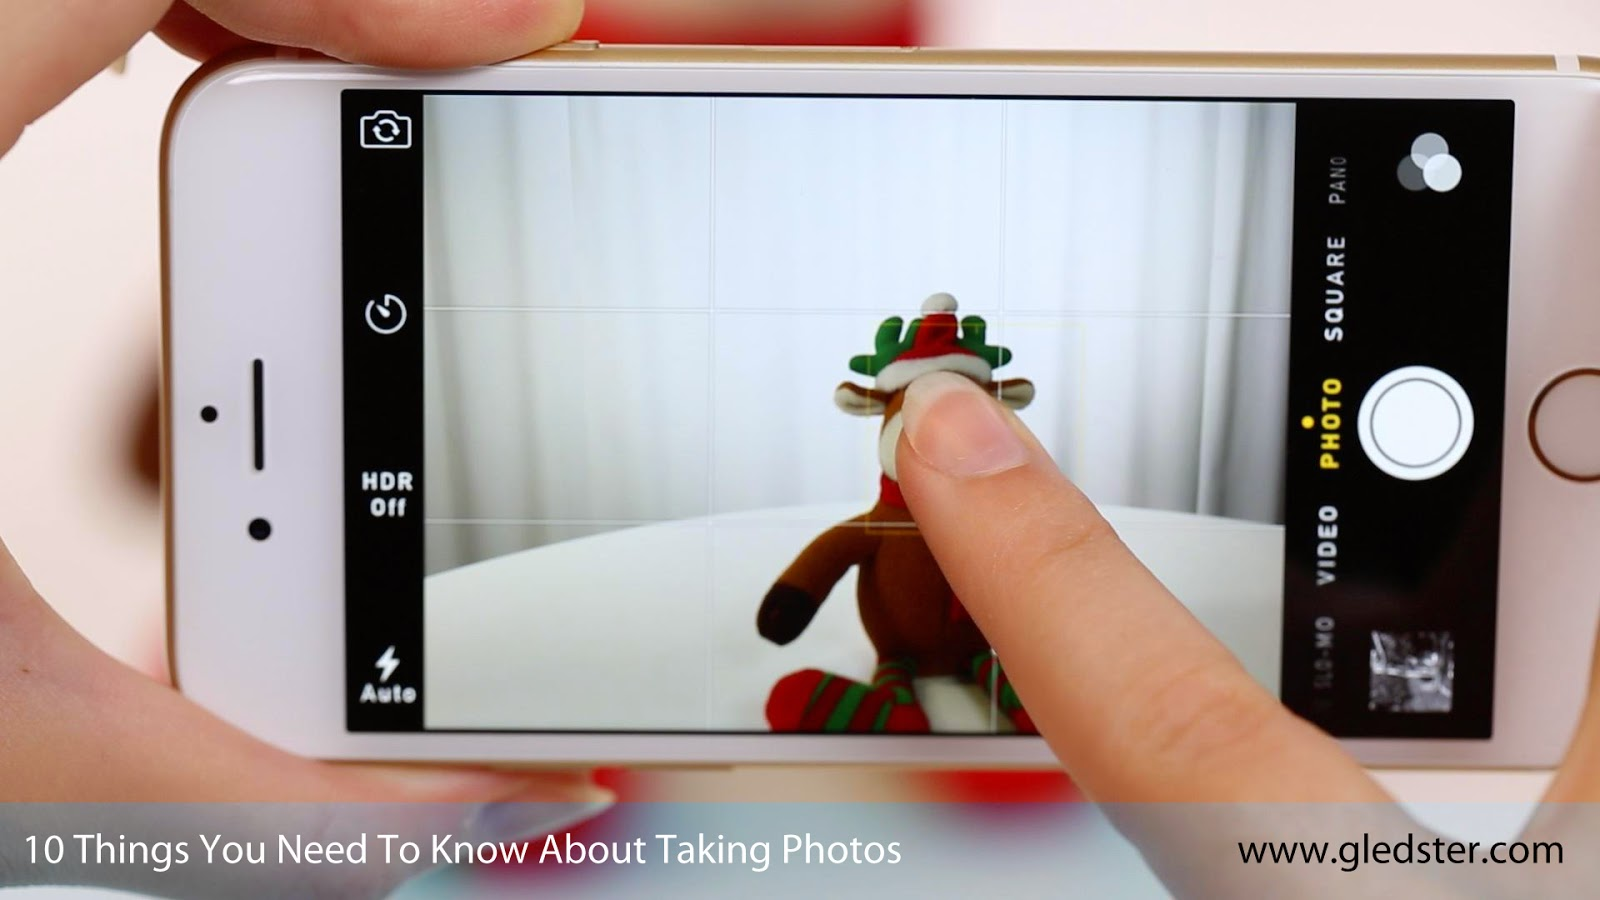 10 Things You Need To Know About Taking Photos